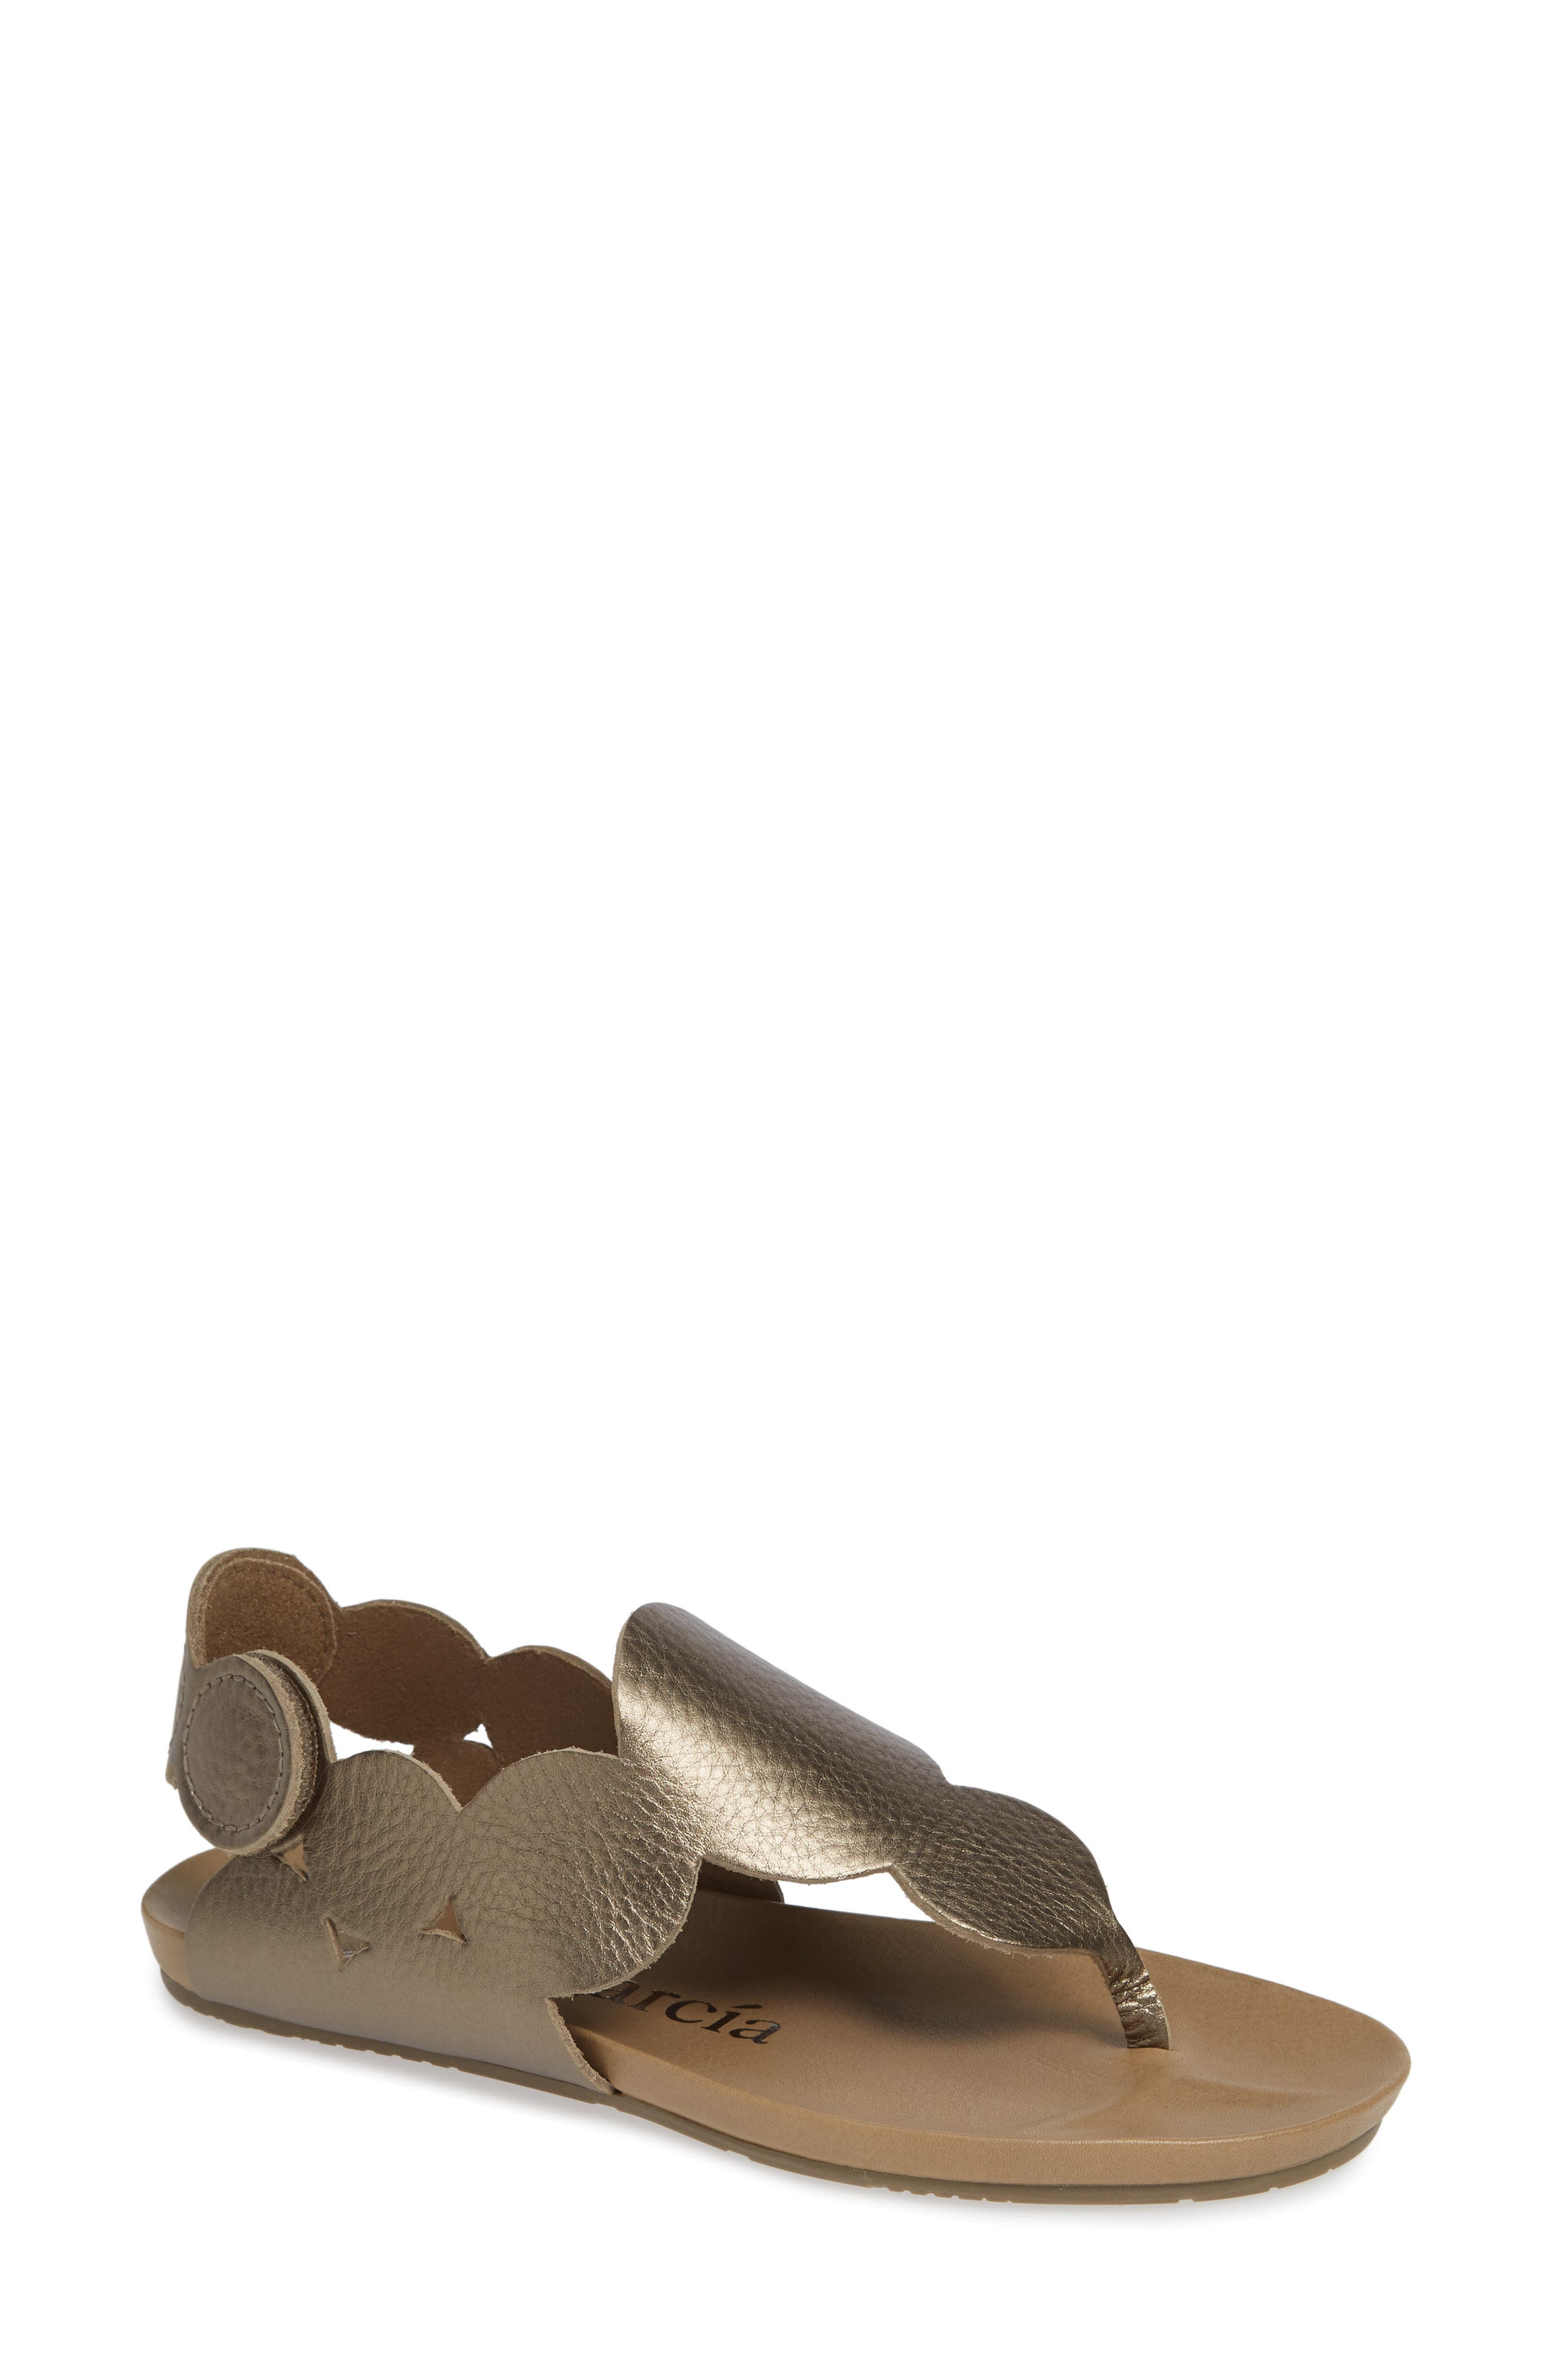 Jamee Sandal,                         Main,                         color, BARK CERVO LAME